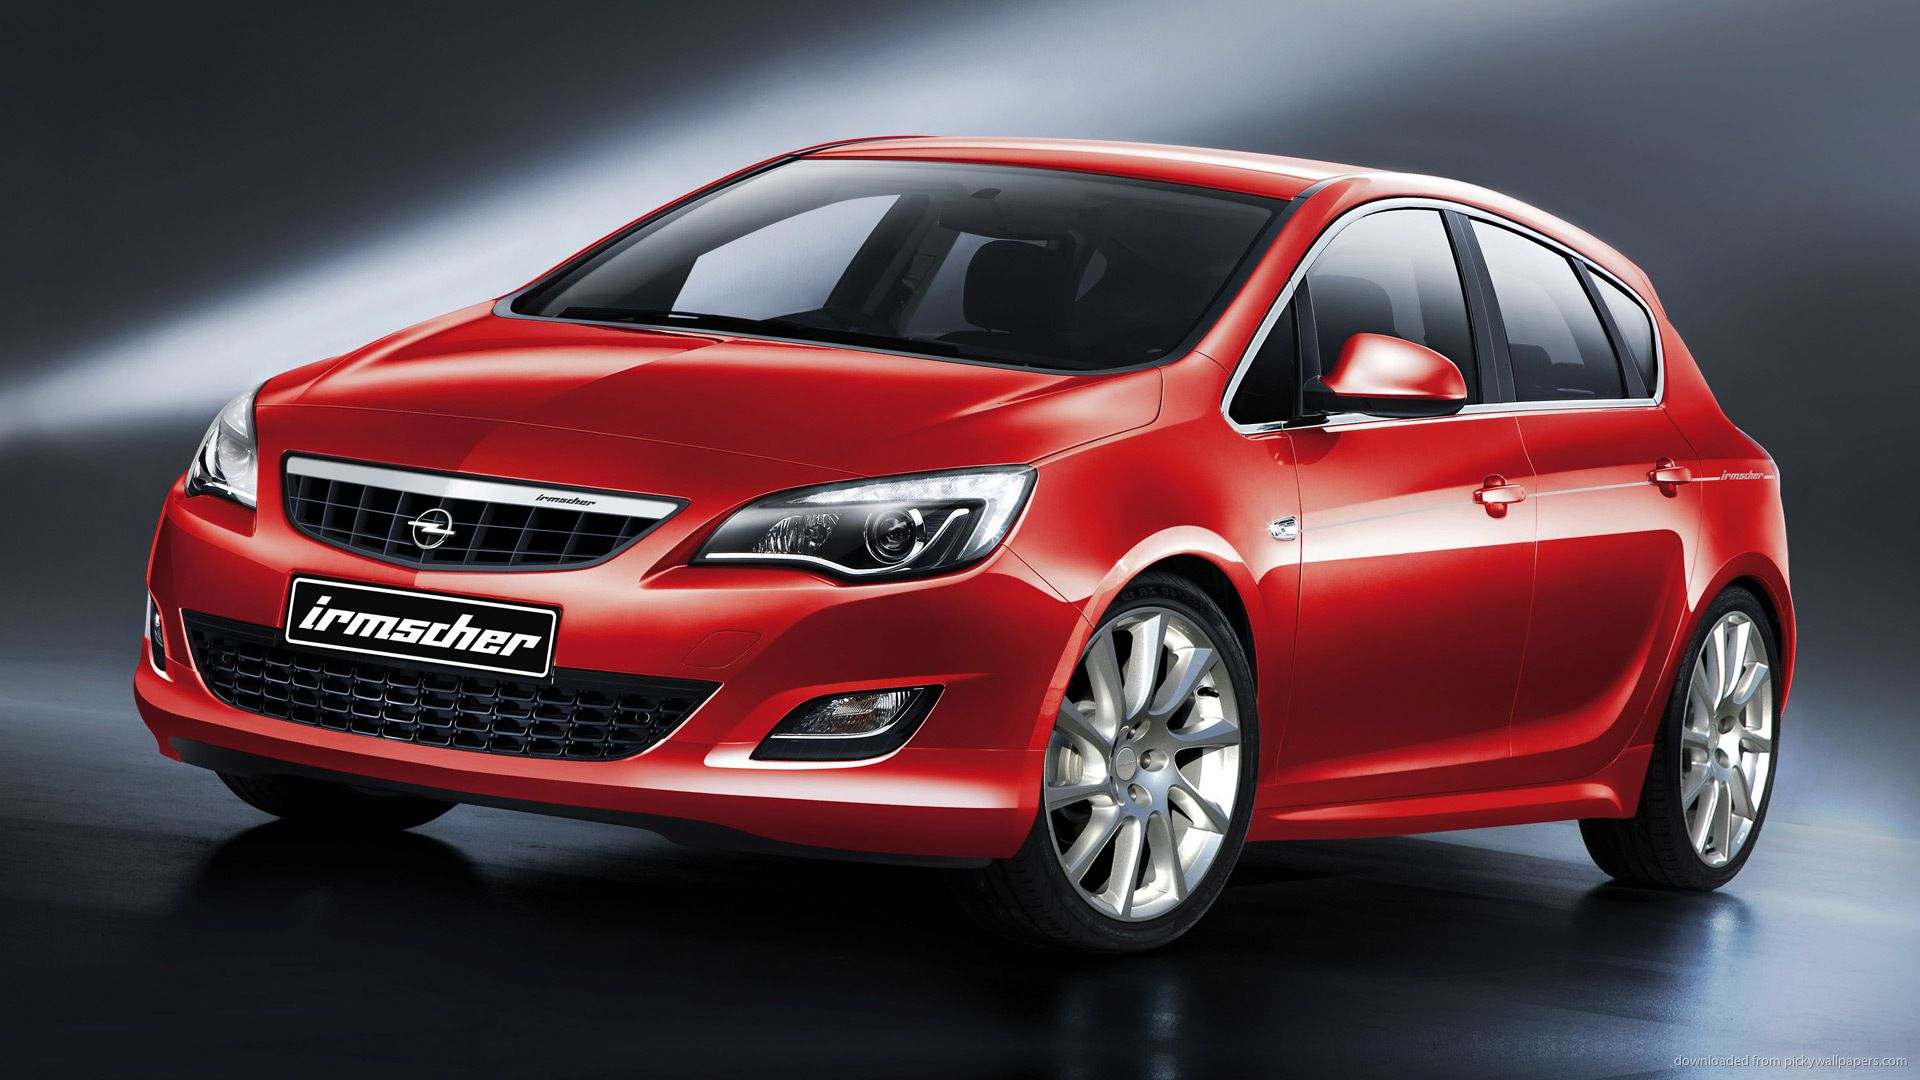 Opel Astra Wallpaper For Nokia X2